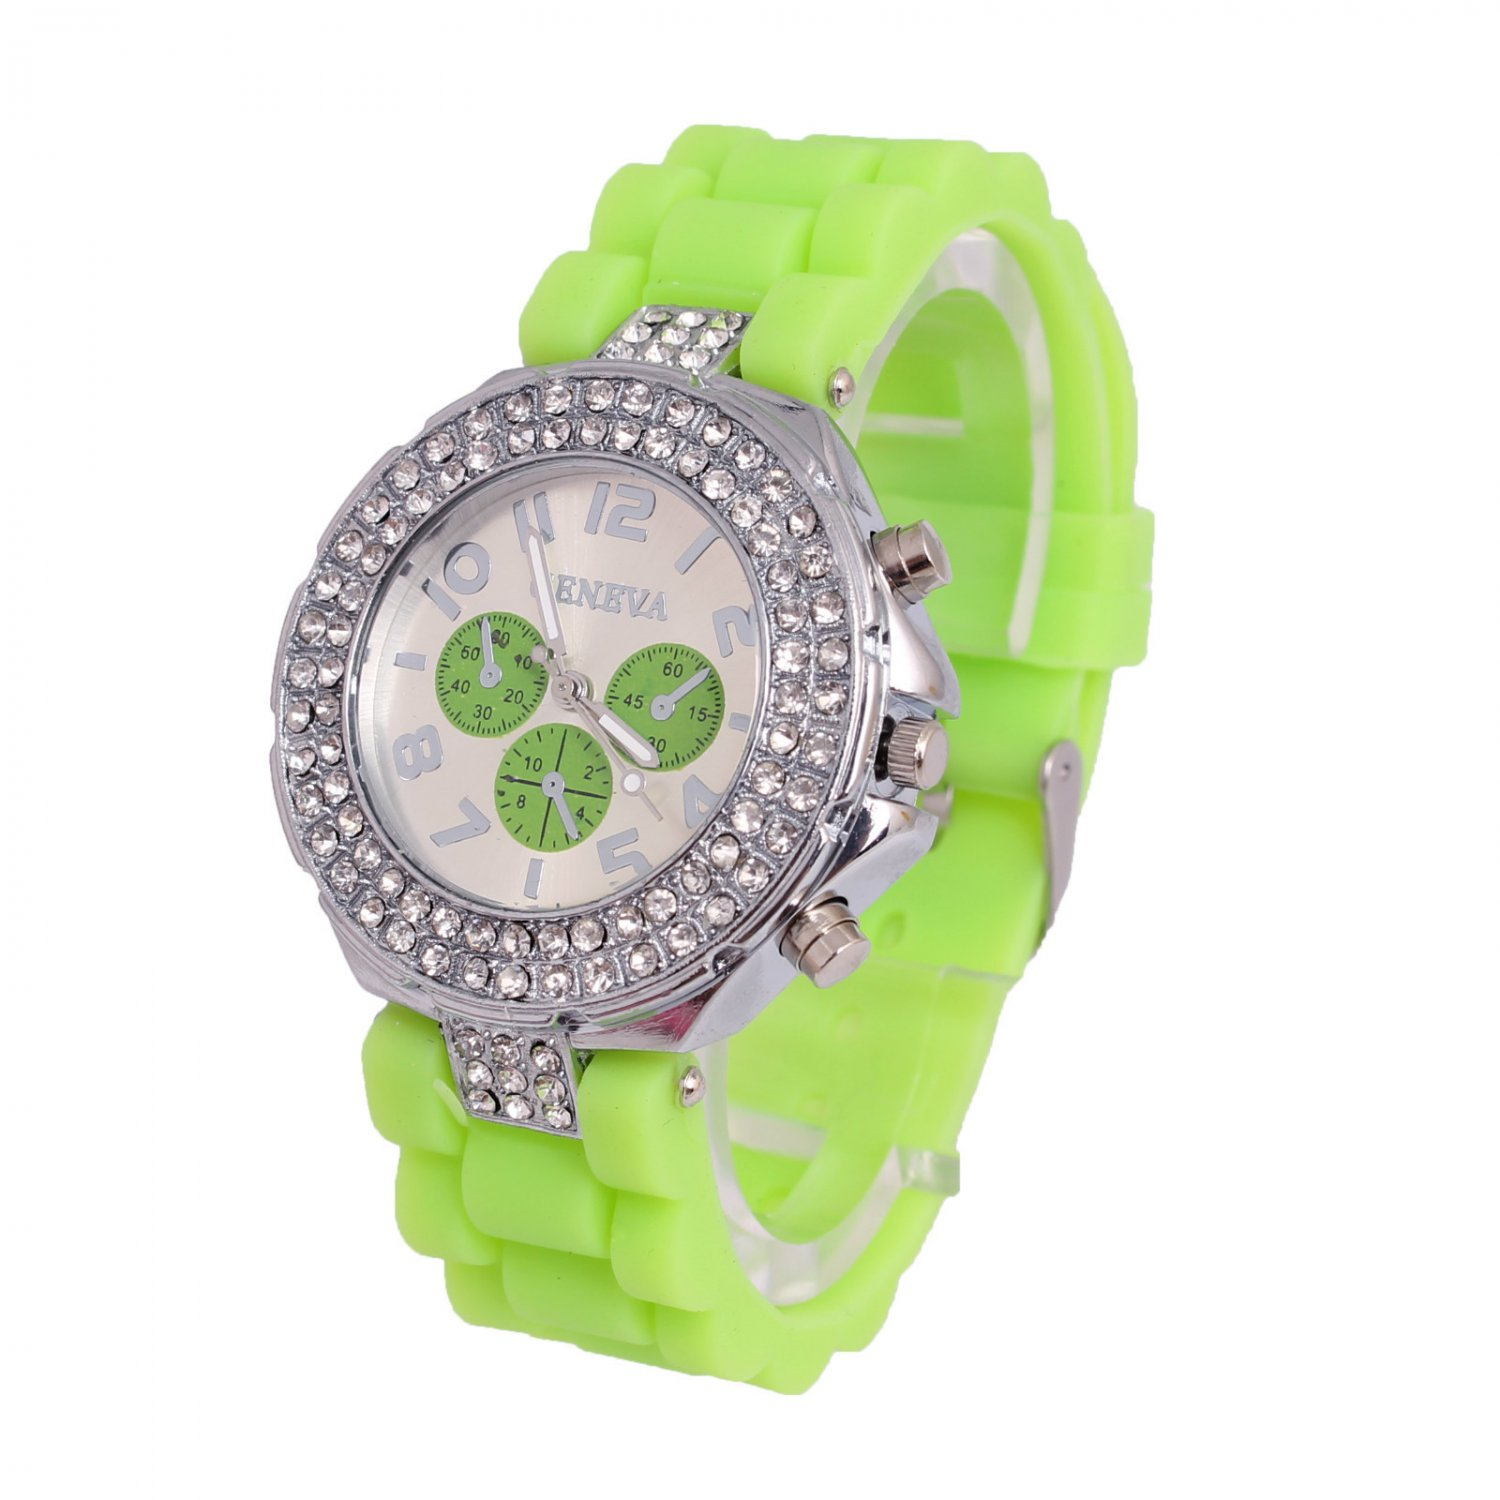 GENEVA WATCH GREEN W/CRYSTAL RUBBER SILICONE BAND